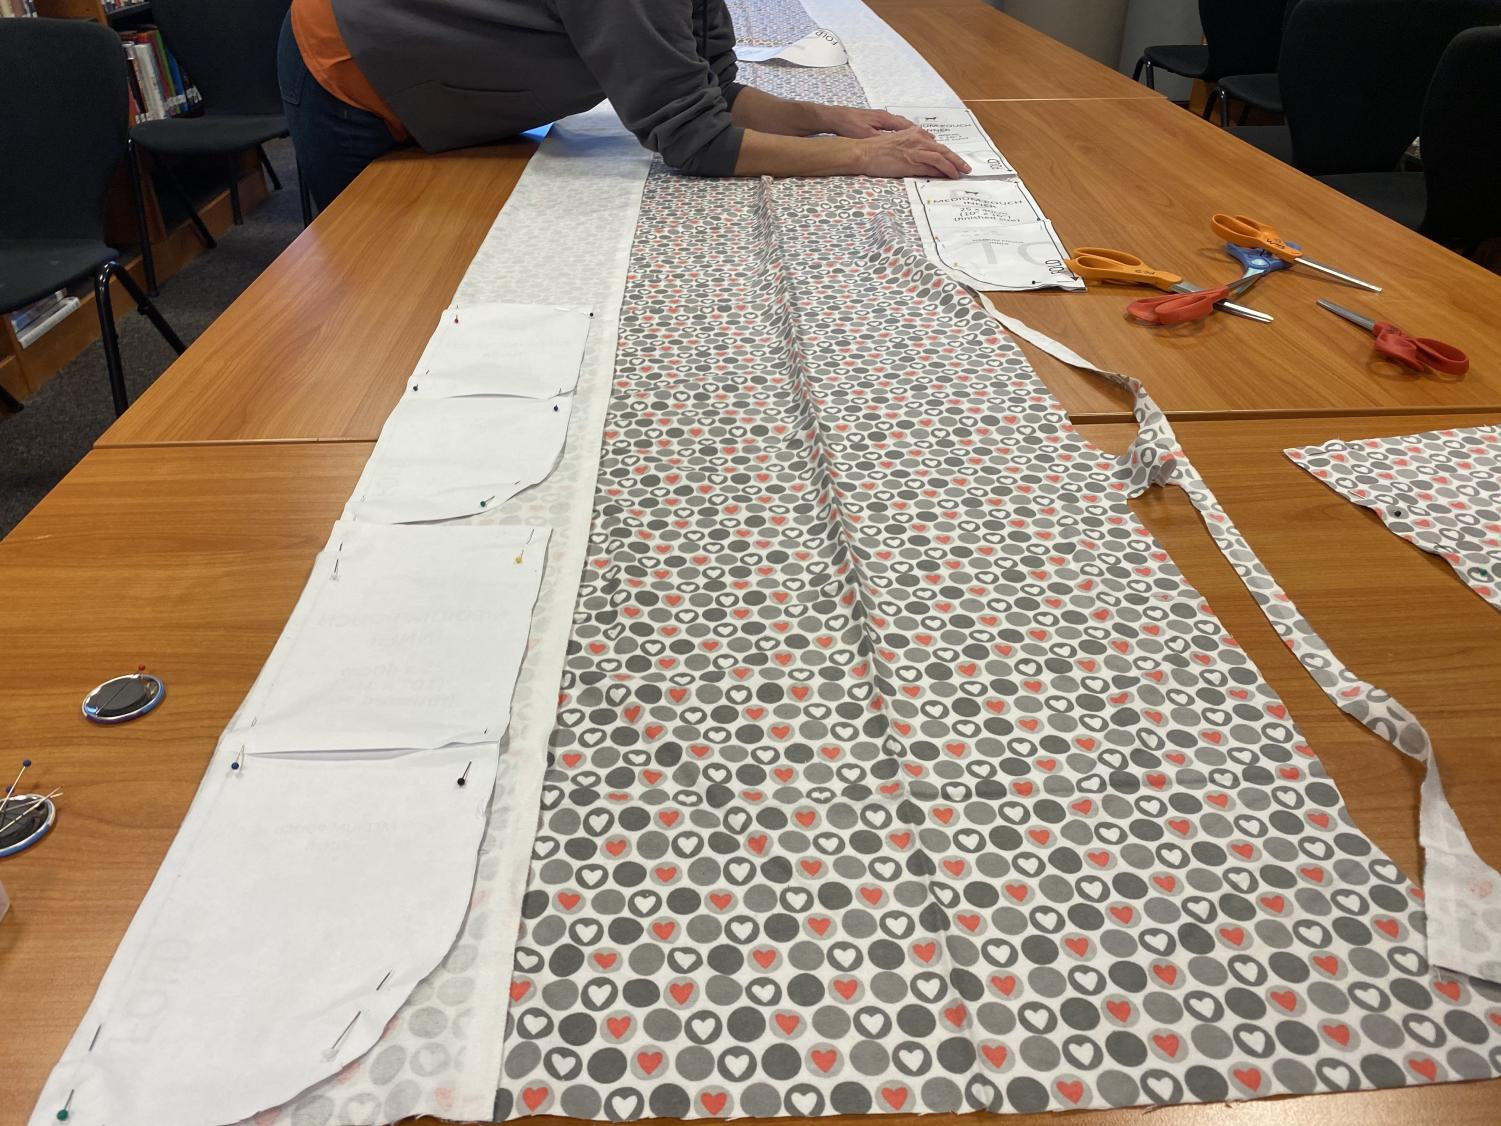 The+fabric+is+spread+out+on+tables+across+the+Great+Room+in+the+library%2C+ready+for+students+to+cut+and+pin+for+the+pouches.